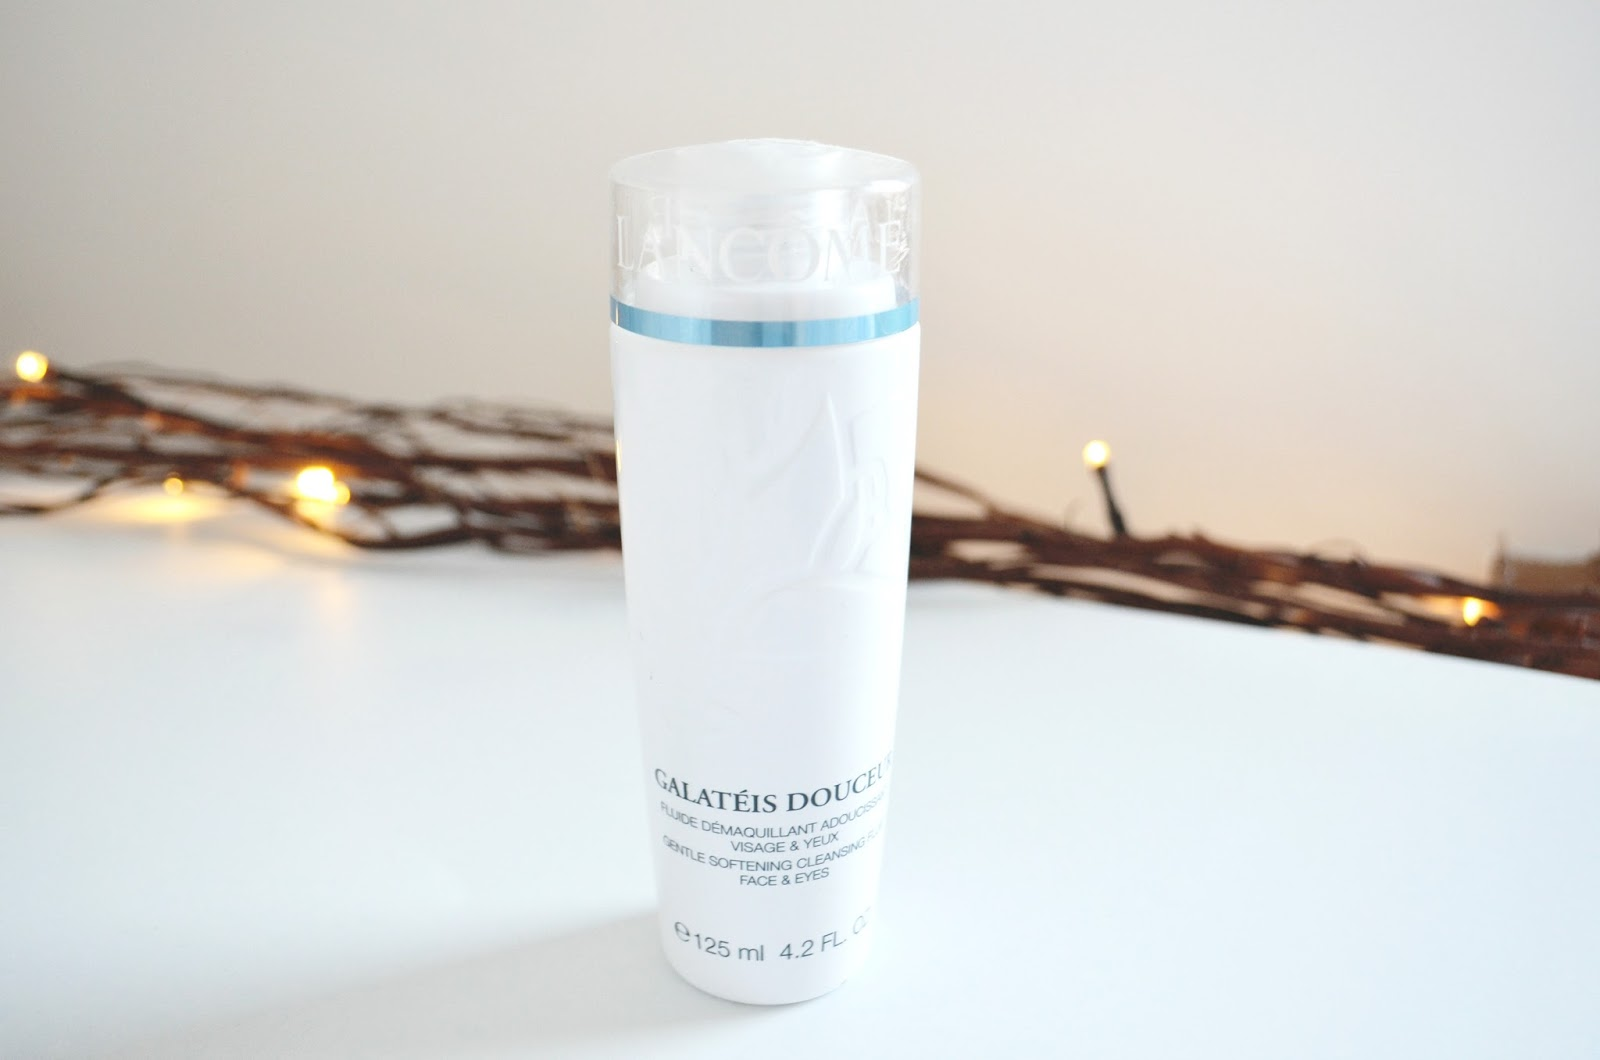 Review of anti ageing cleanser for wrinkles and fine lines